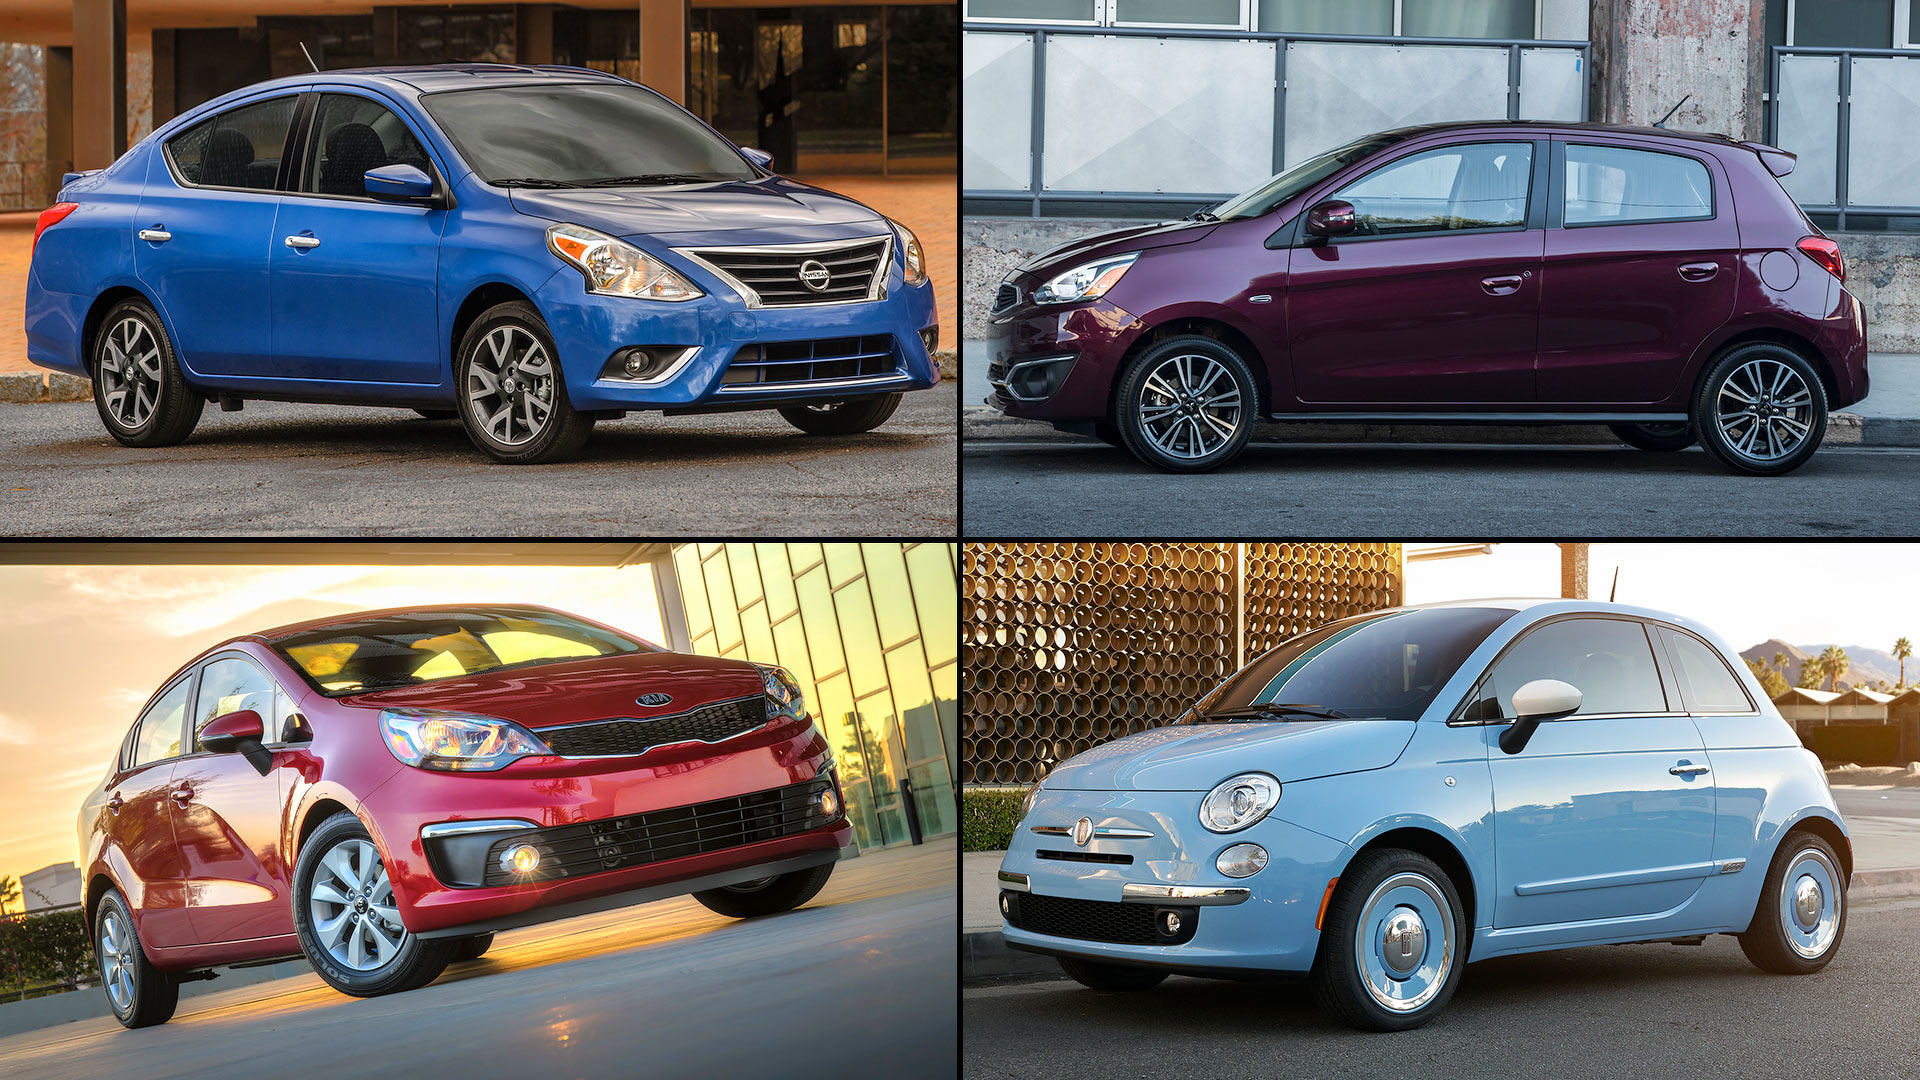 20 Cheapest Cars For Sale In The U.S.